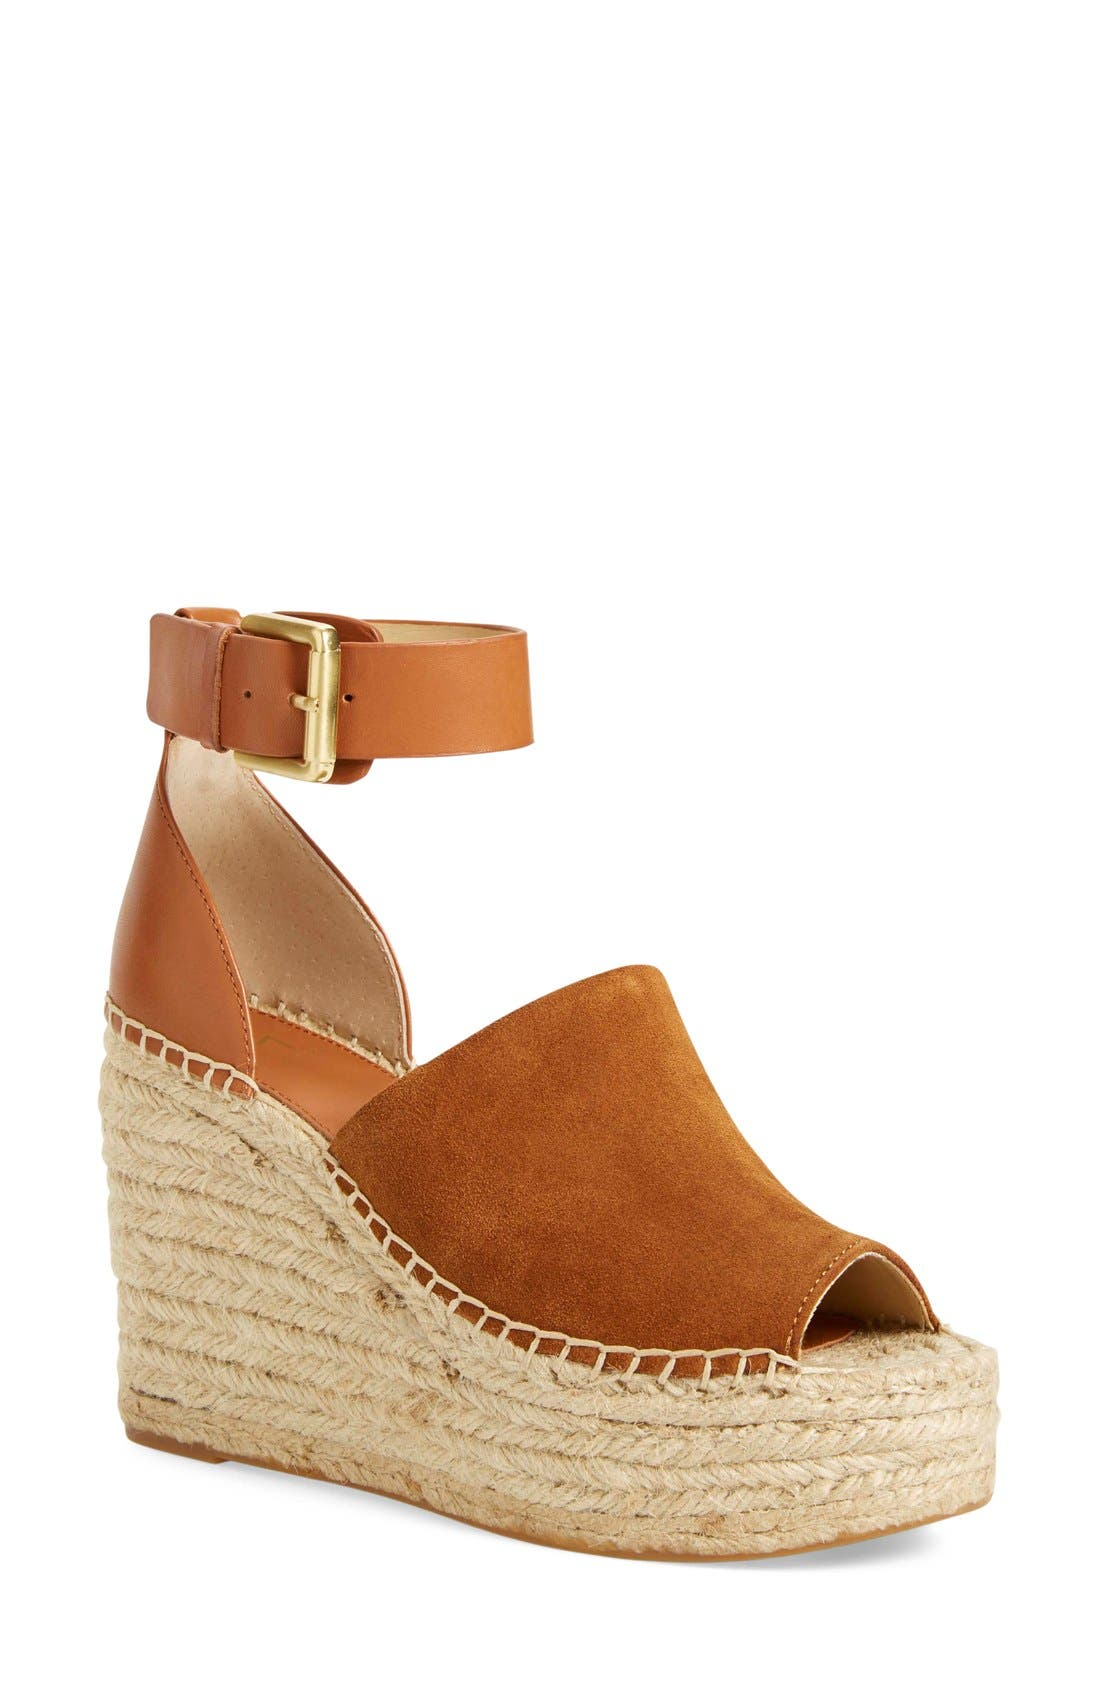 'Adalyn' Espadrille Wedge Sandal,                         Main,                         color, Tan/ Saddle